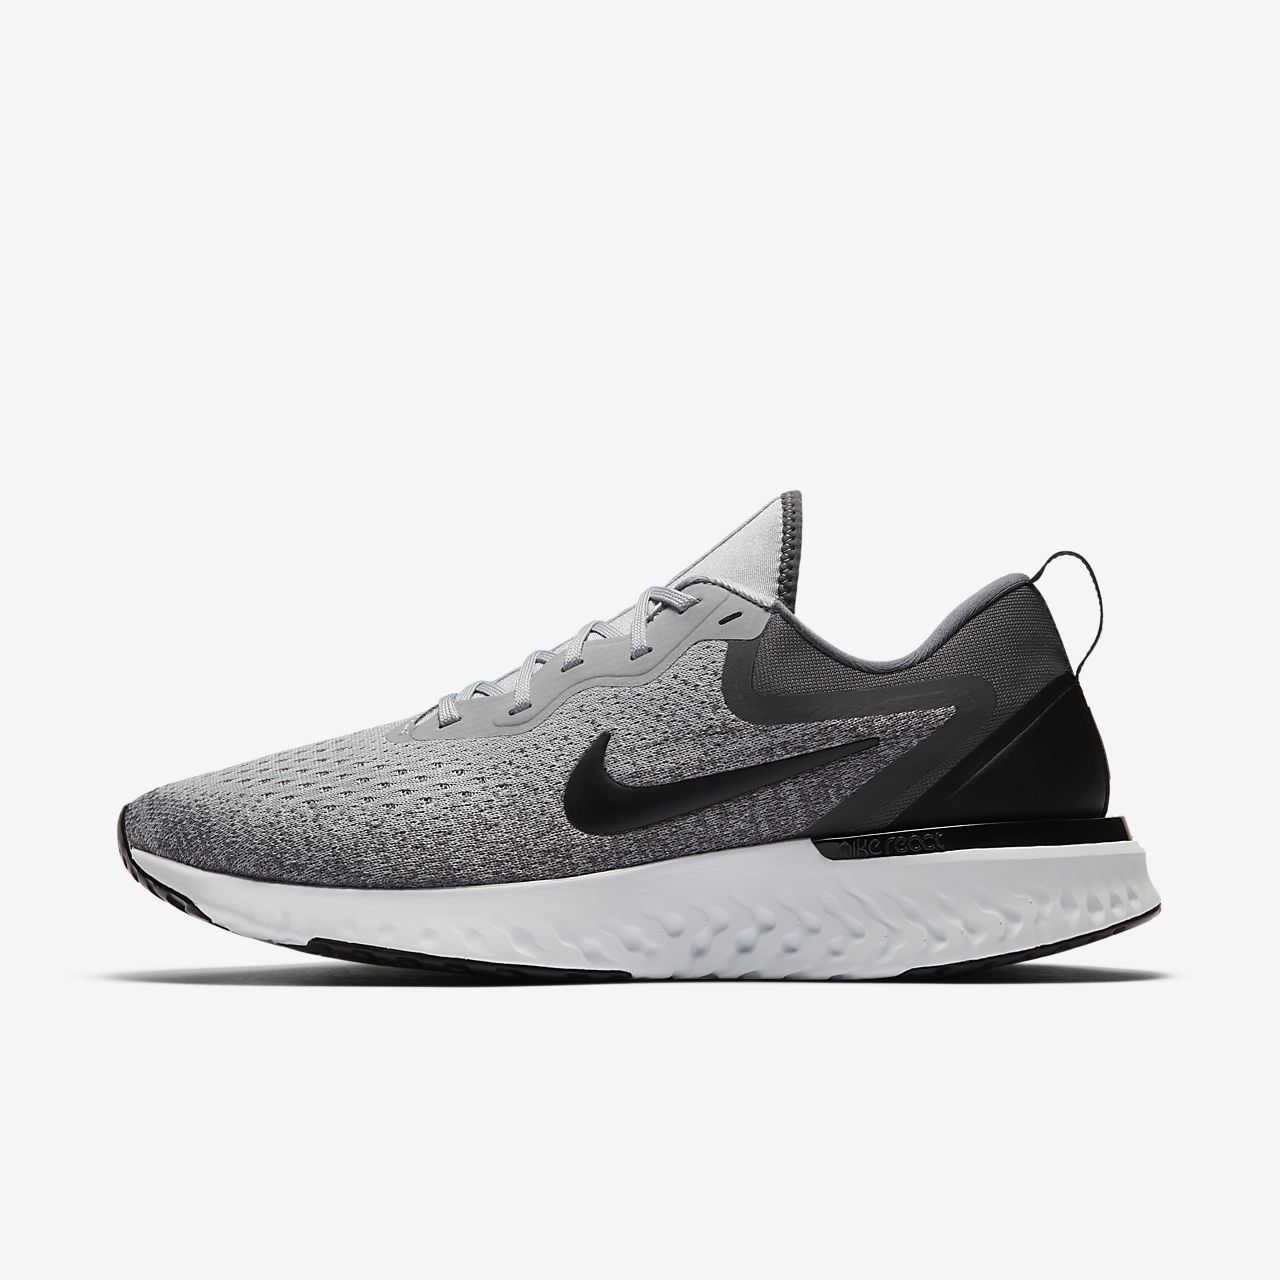 NEW Nike Odyssey React Cool Grey Dark Grey Pure Platinum Black White AO9819-003